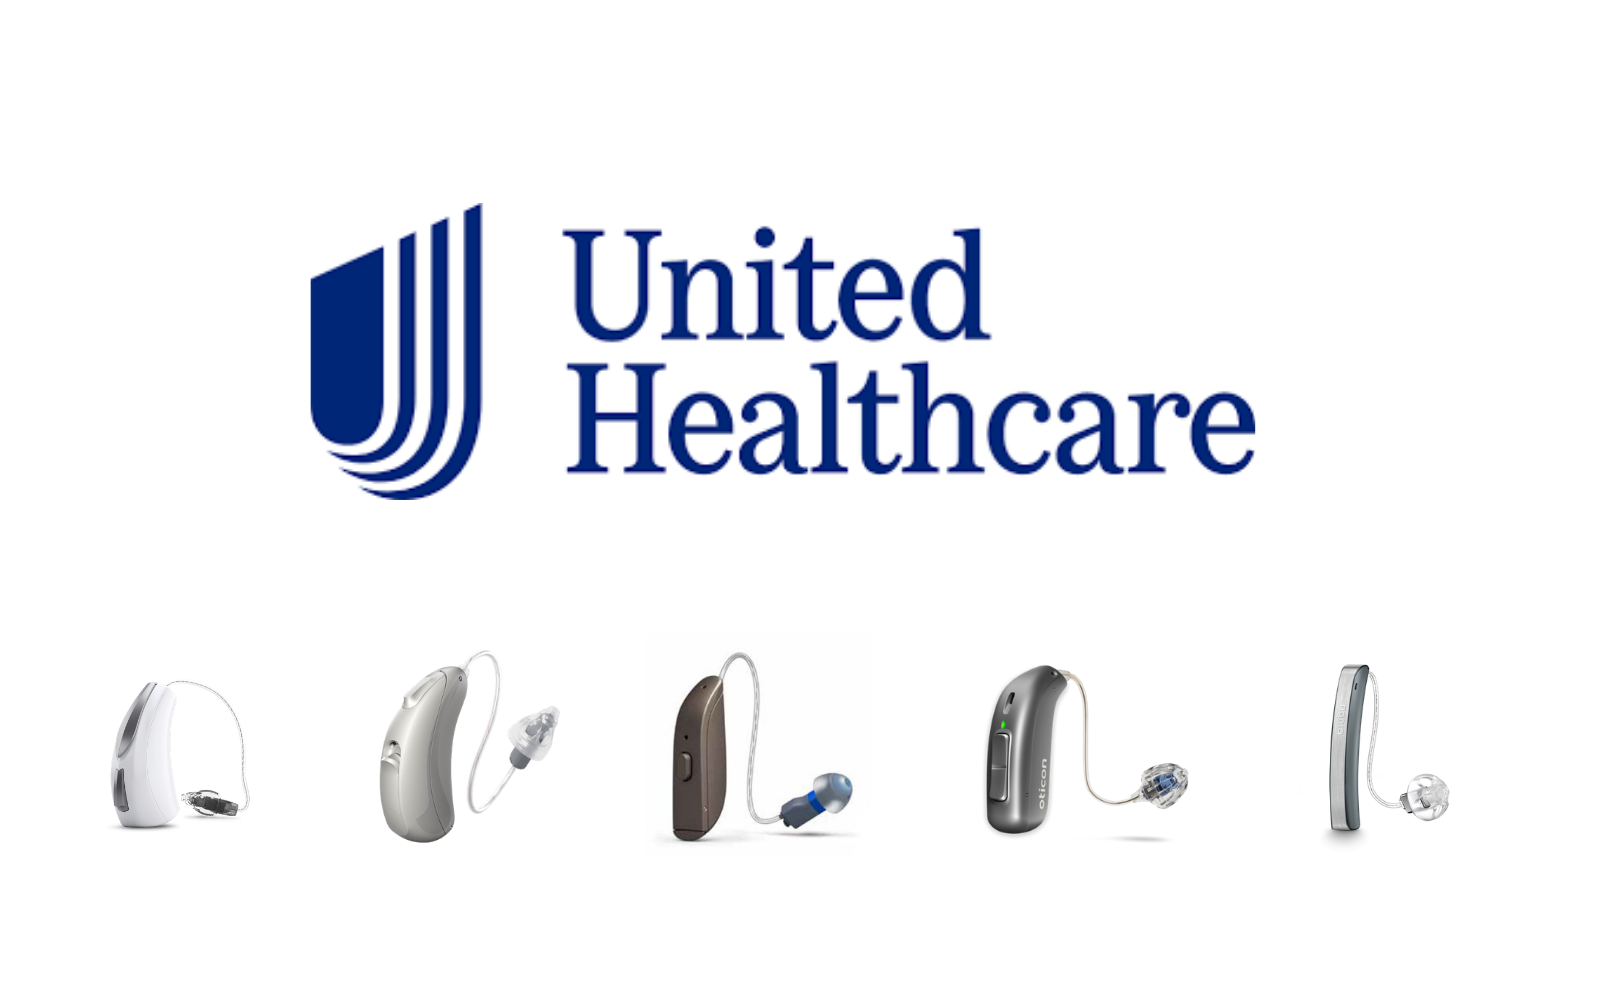 hearing aid prices for united healthcare